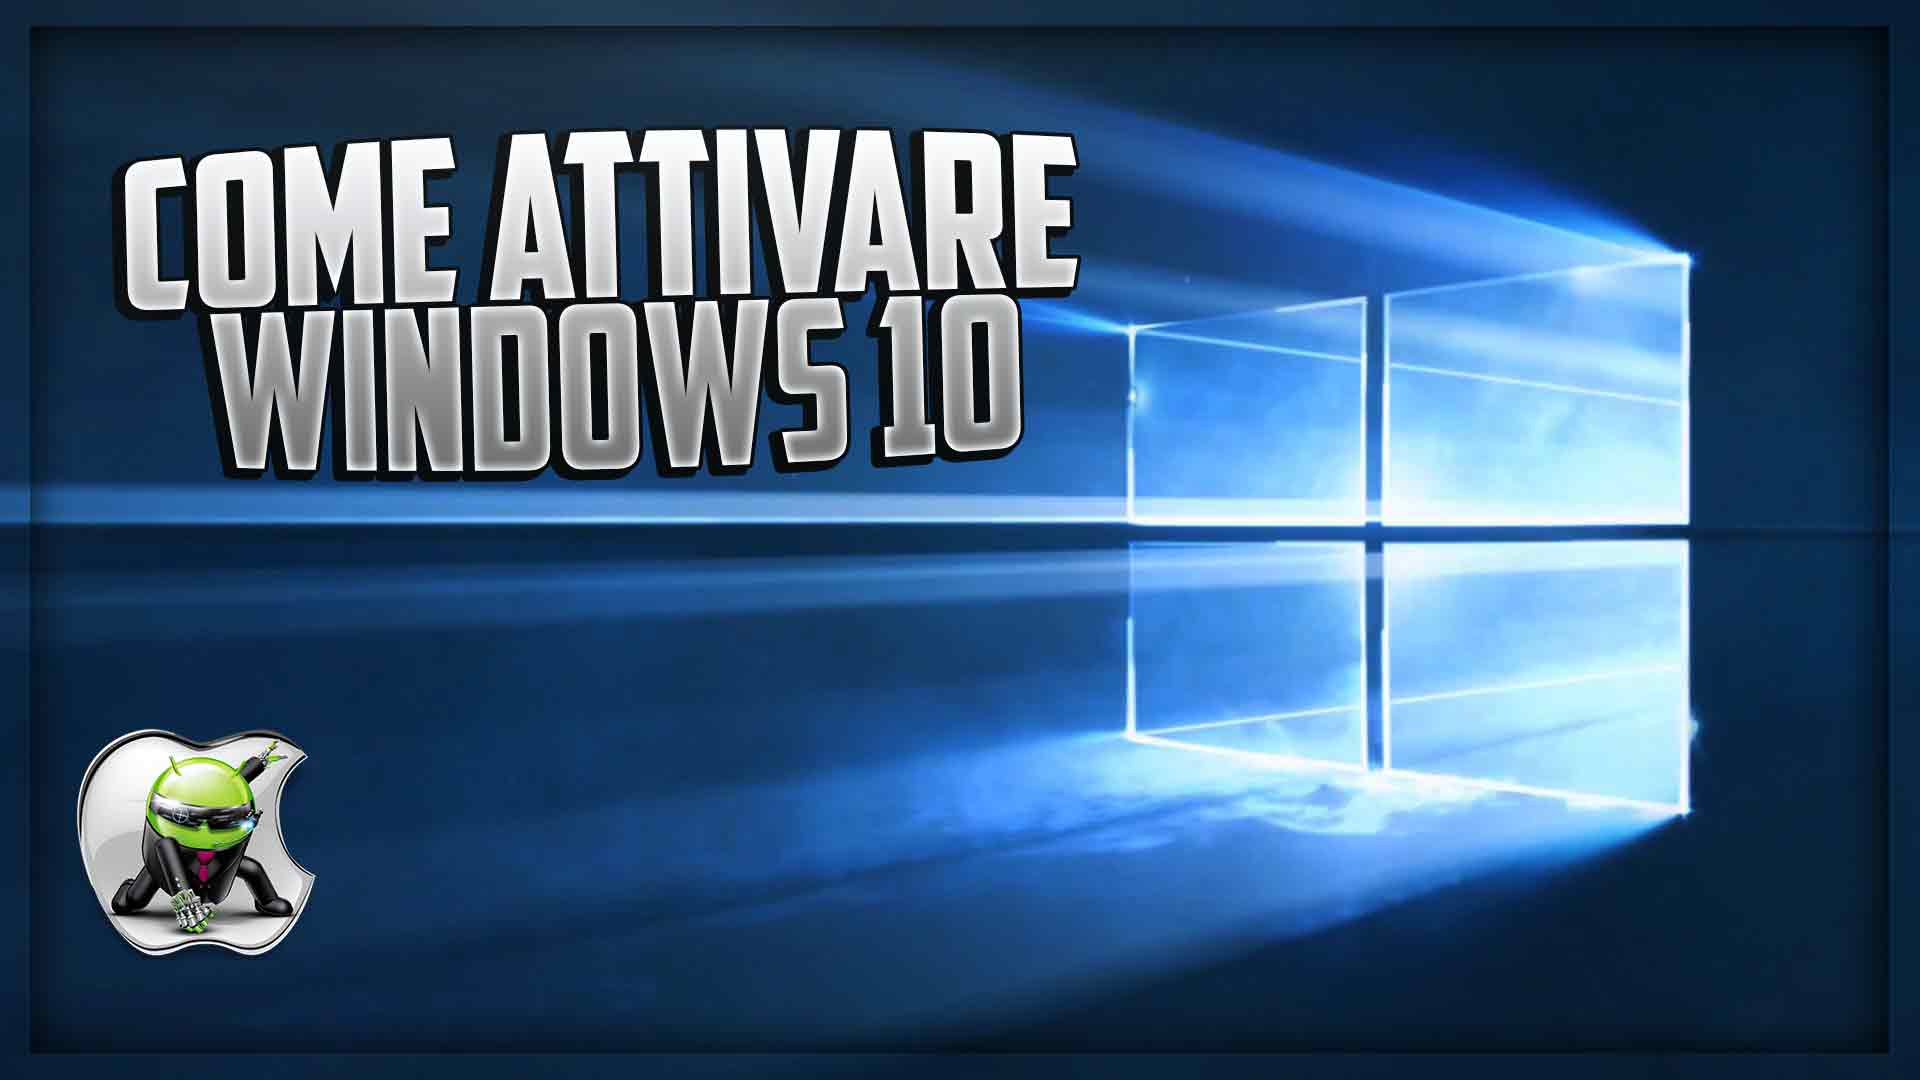 attivare windows 10